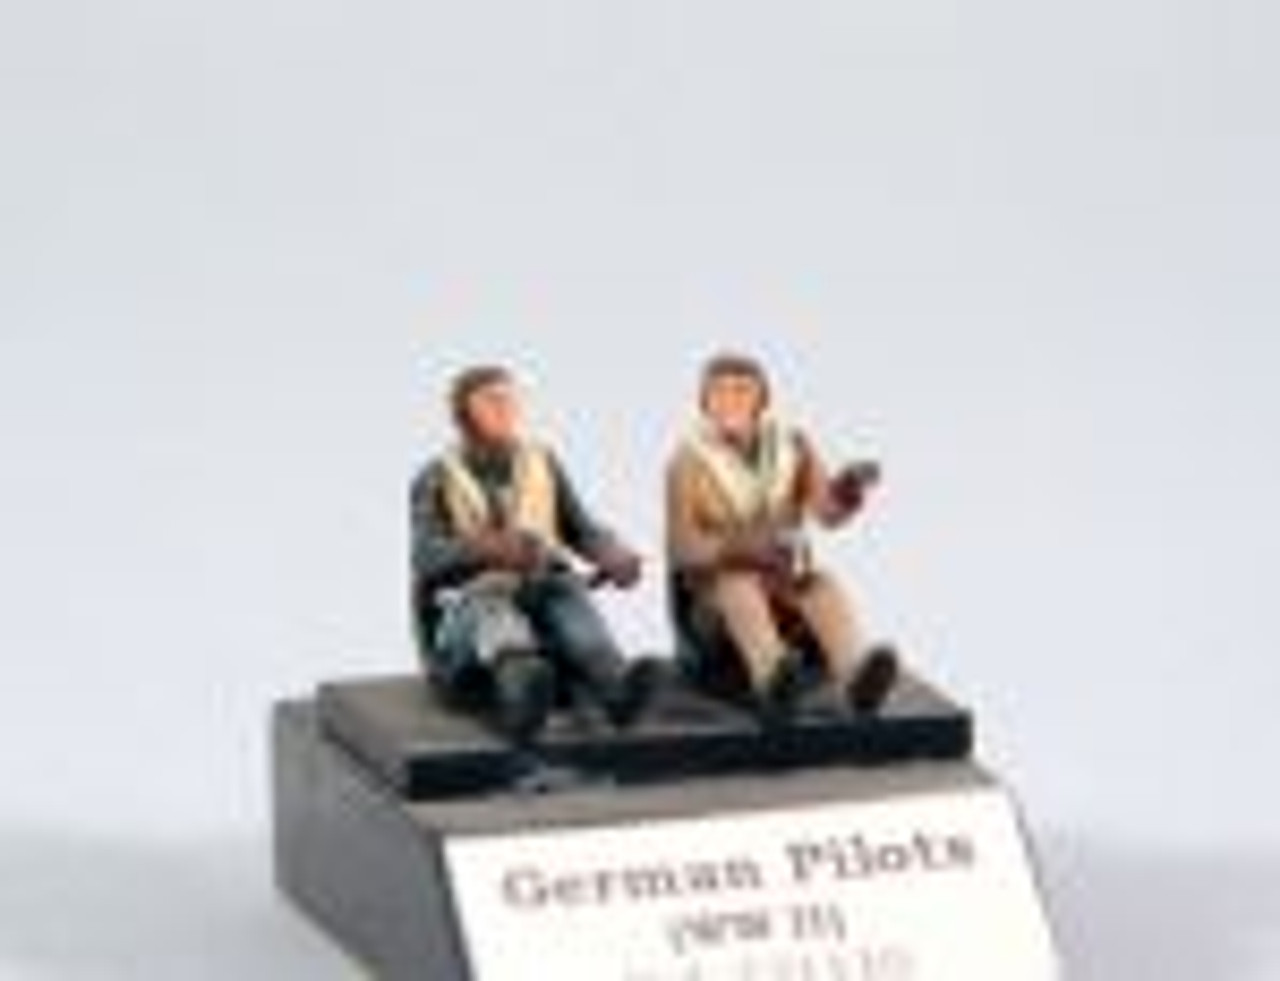 PJ Productions 2x German pilots seated in a/c WW2 Figures 1:72